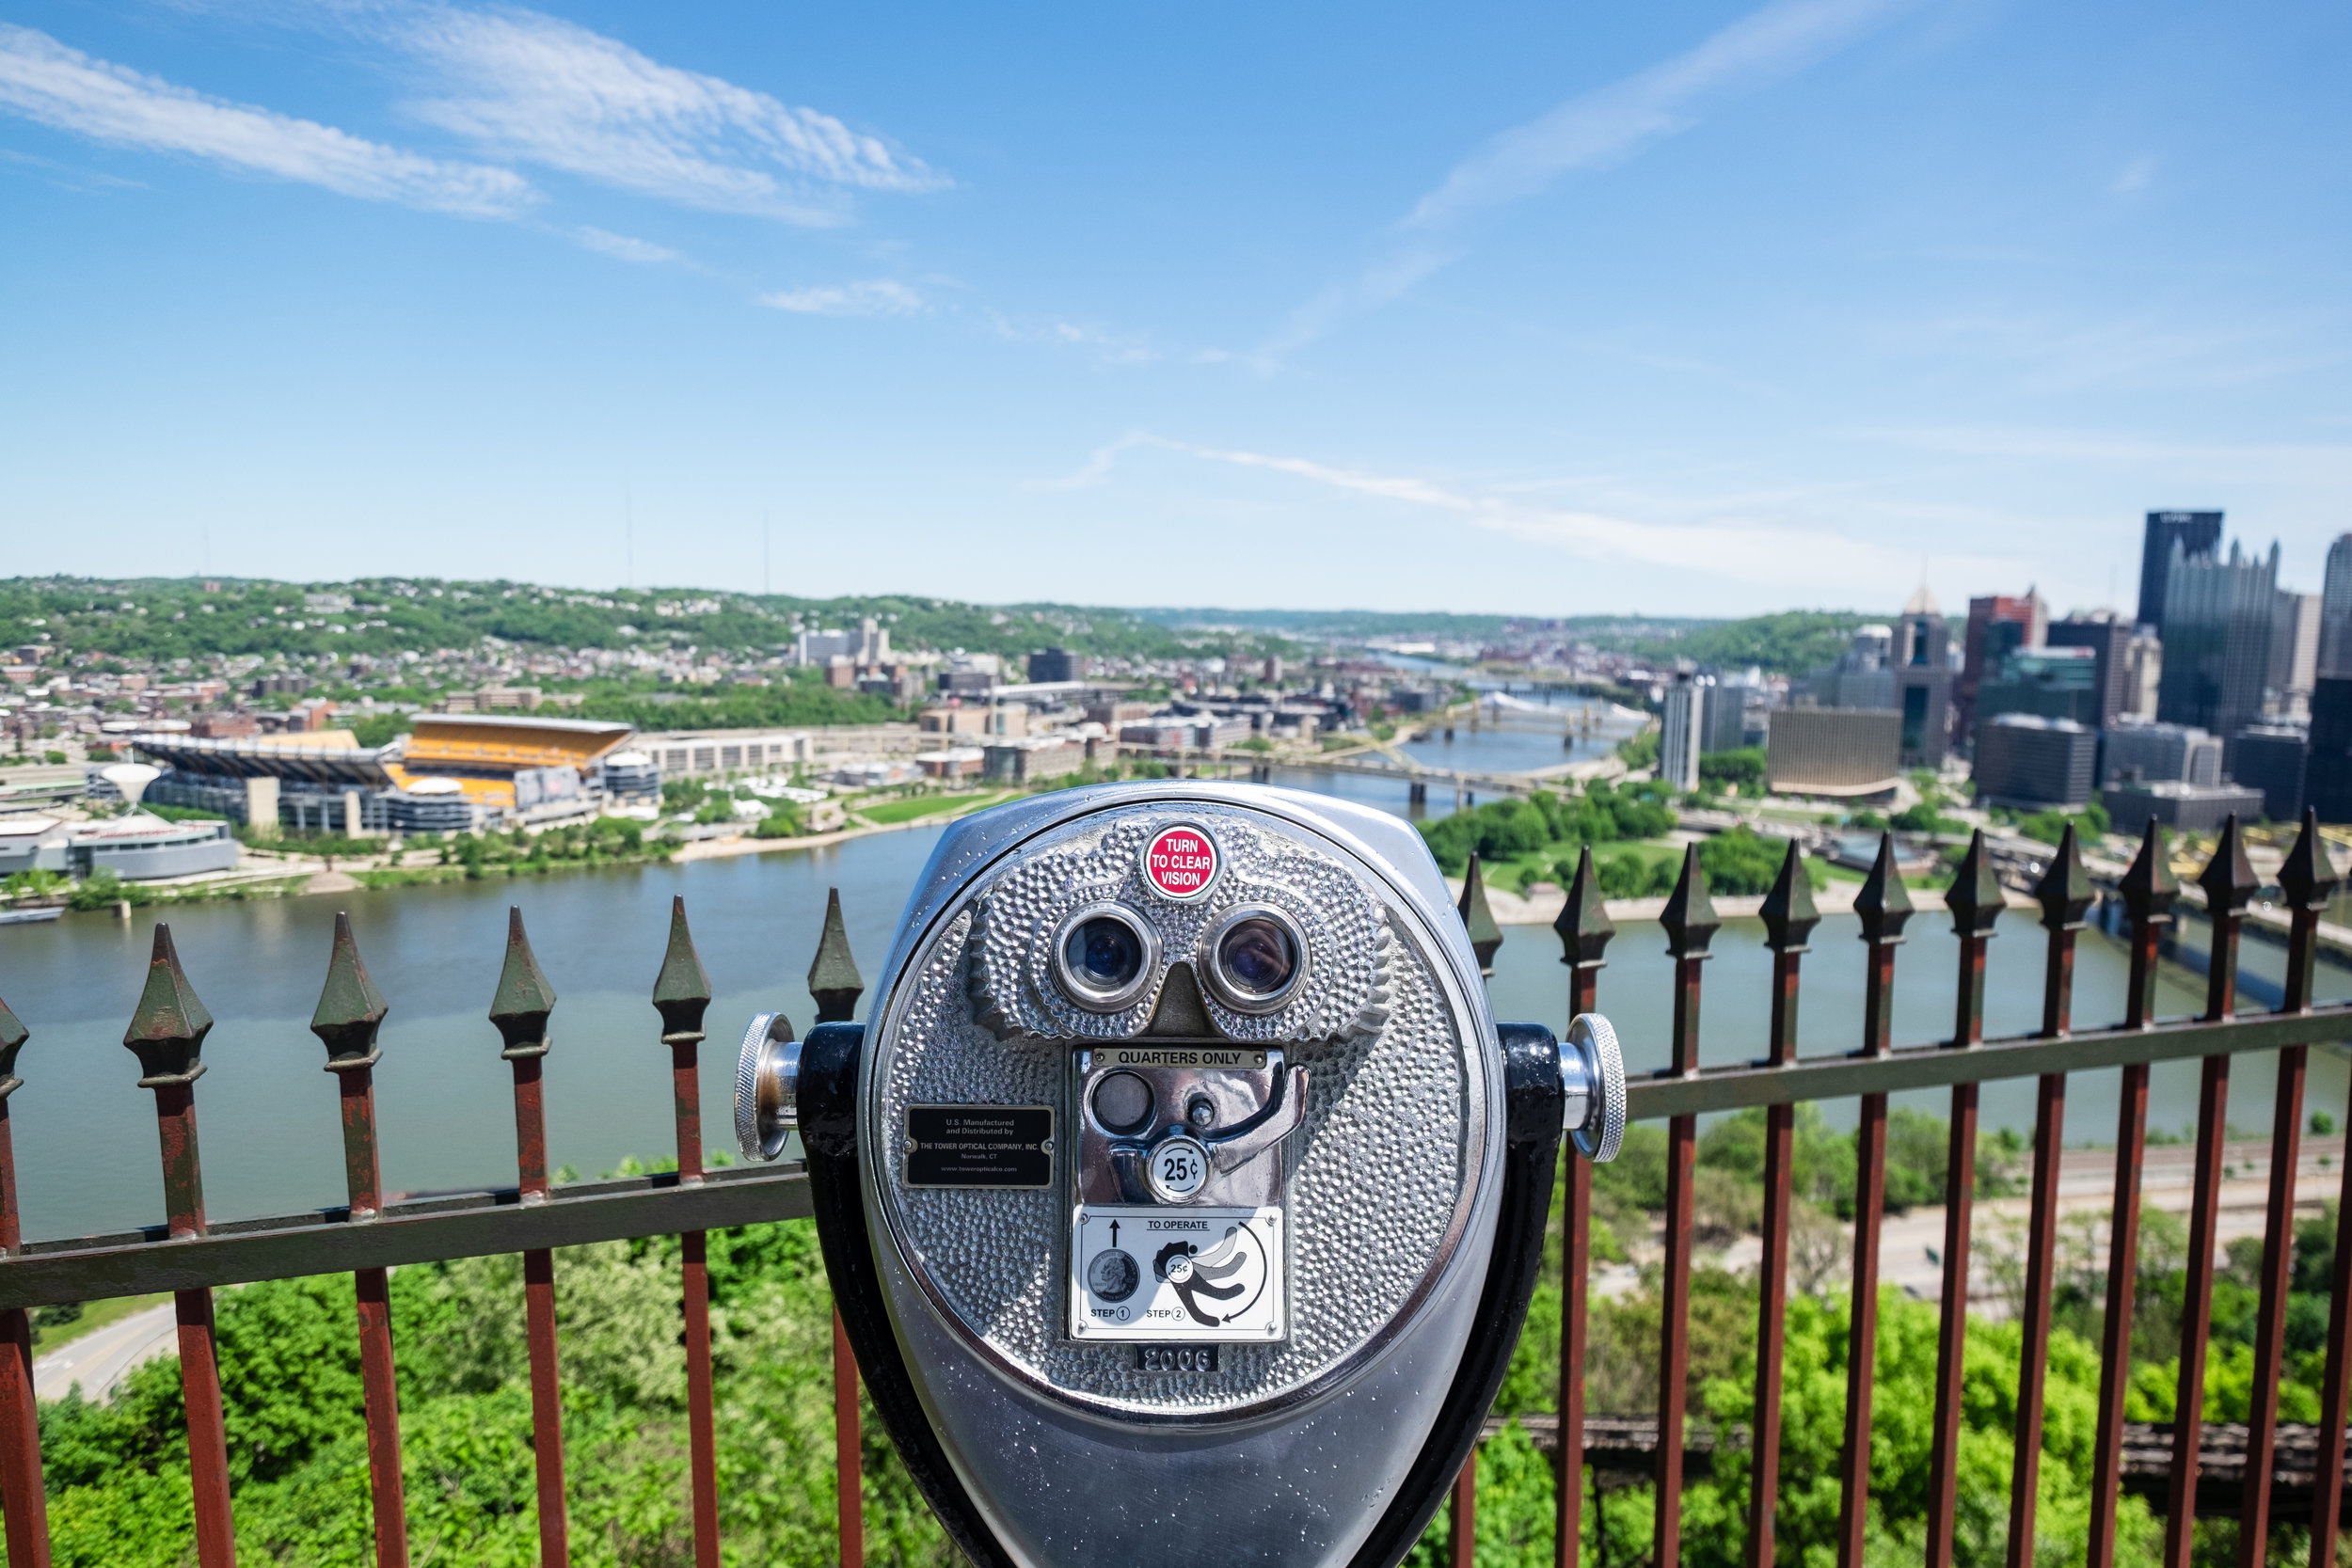 Amazing view from the top of the Duquesne Incline